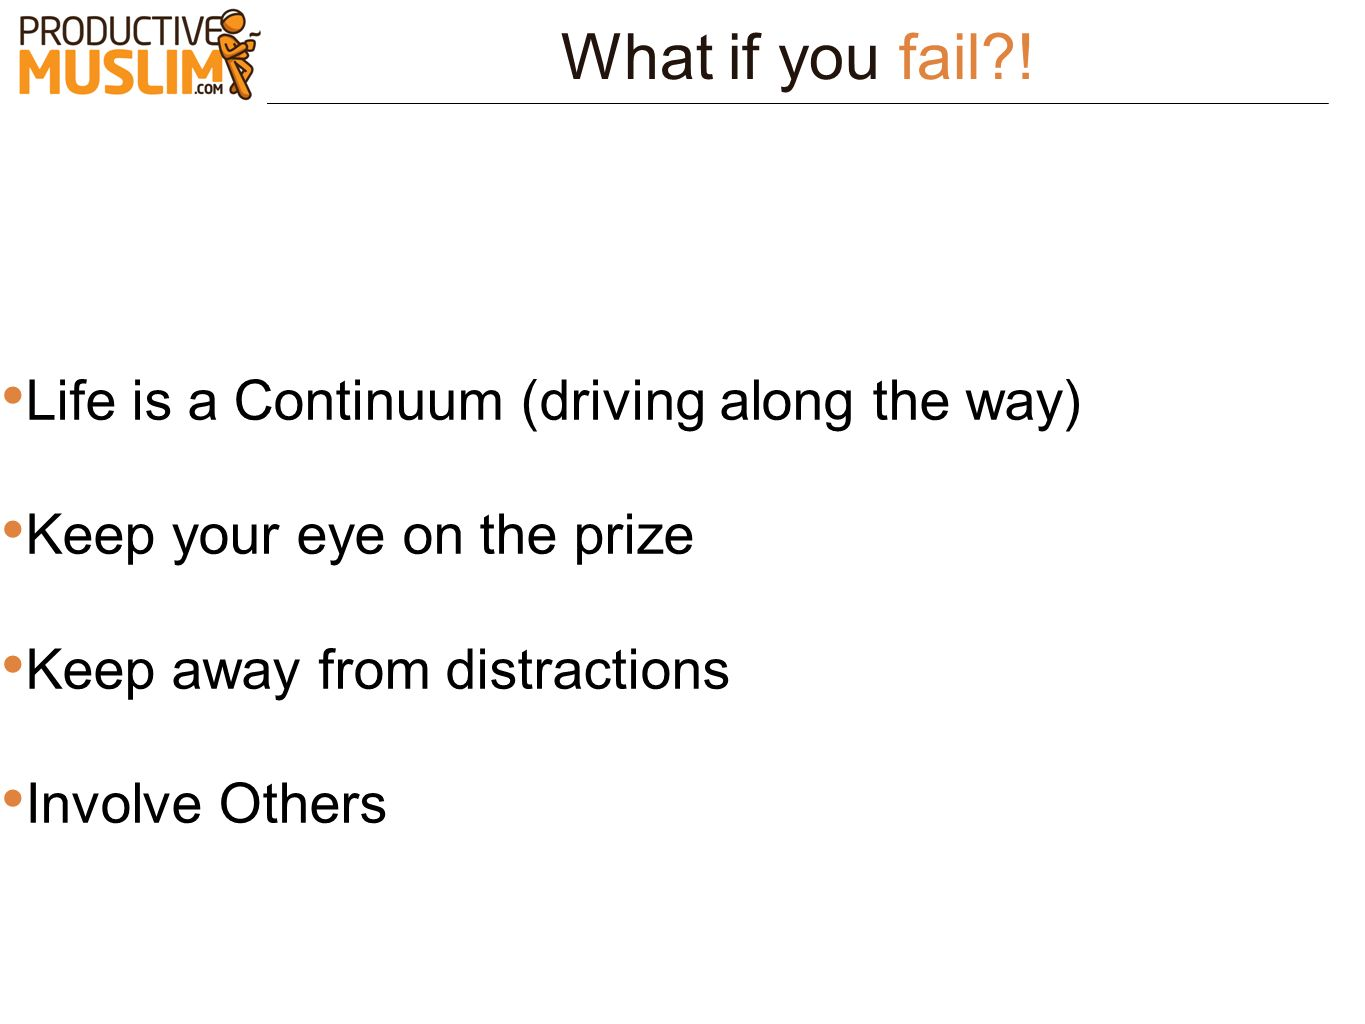 What if you fail ! Life is a Continuum (driving along the way)